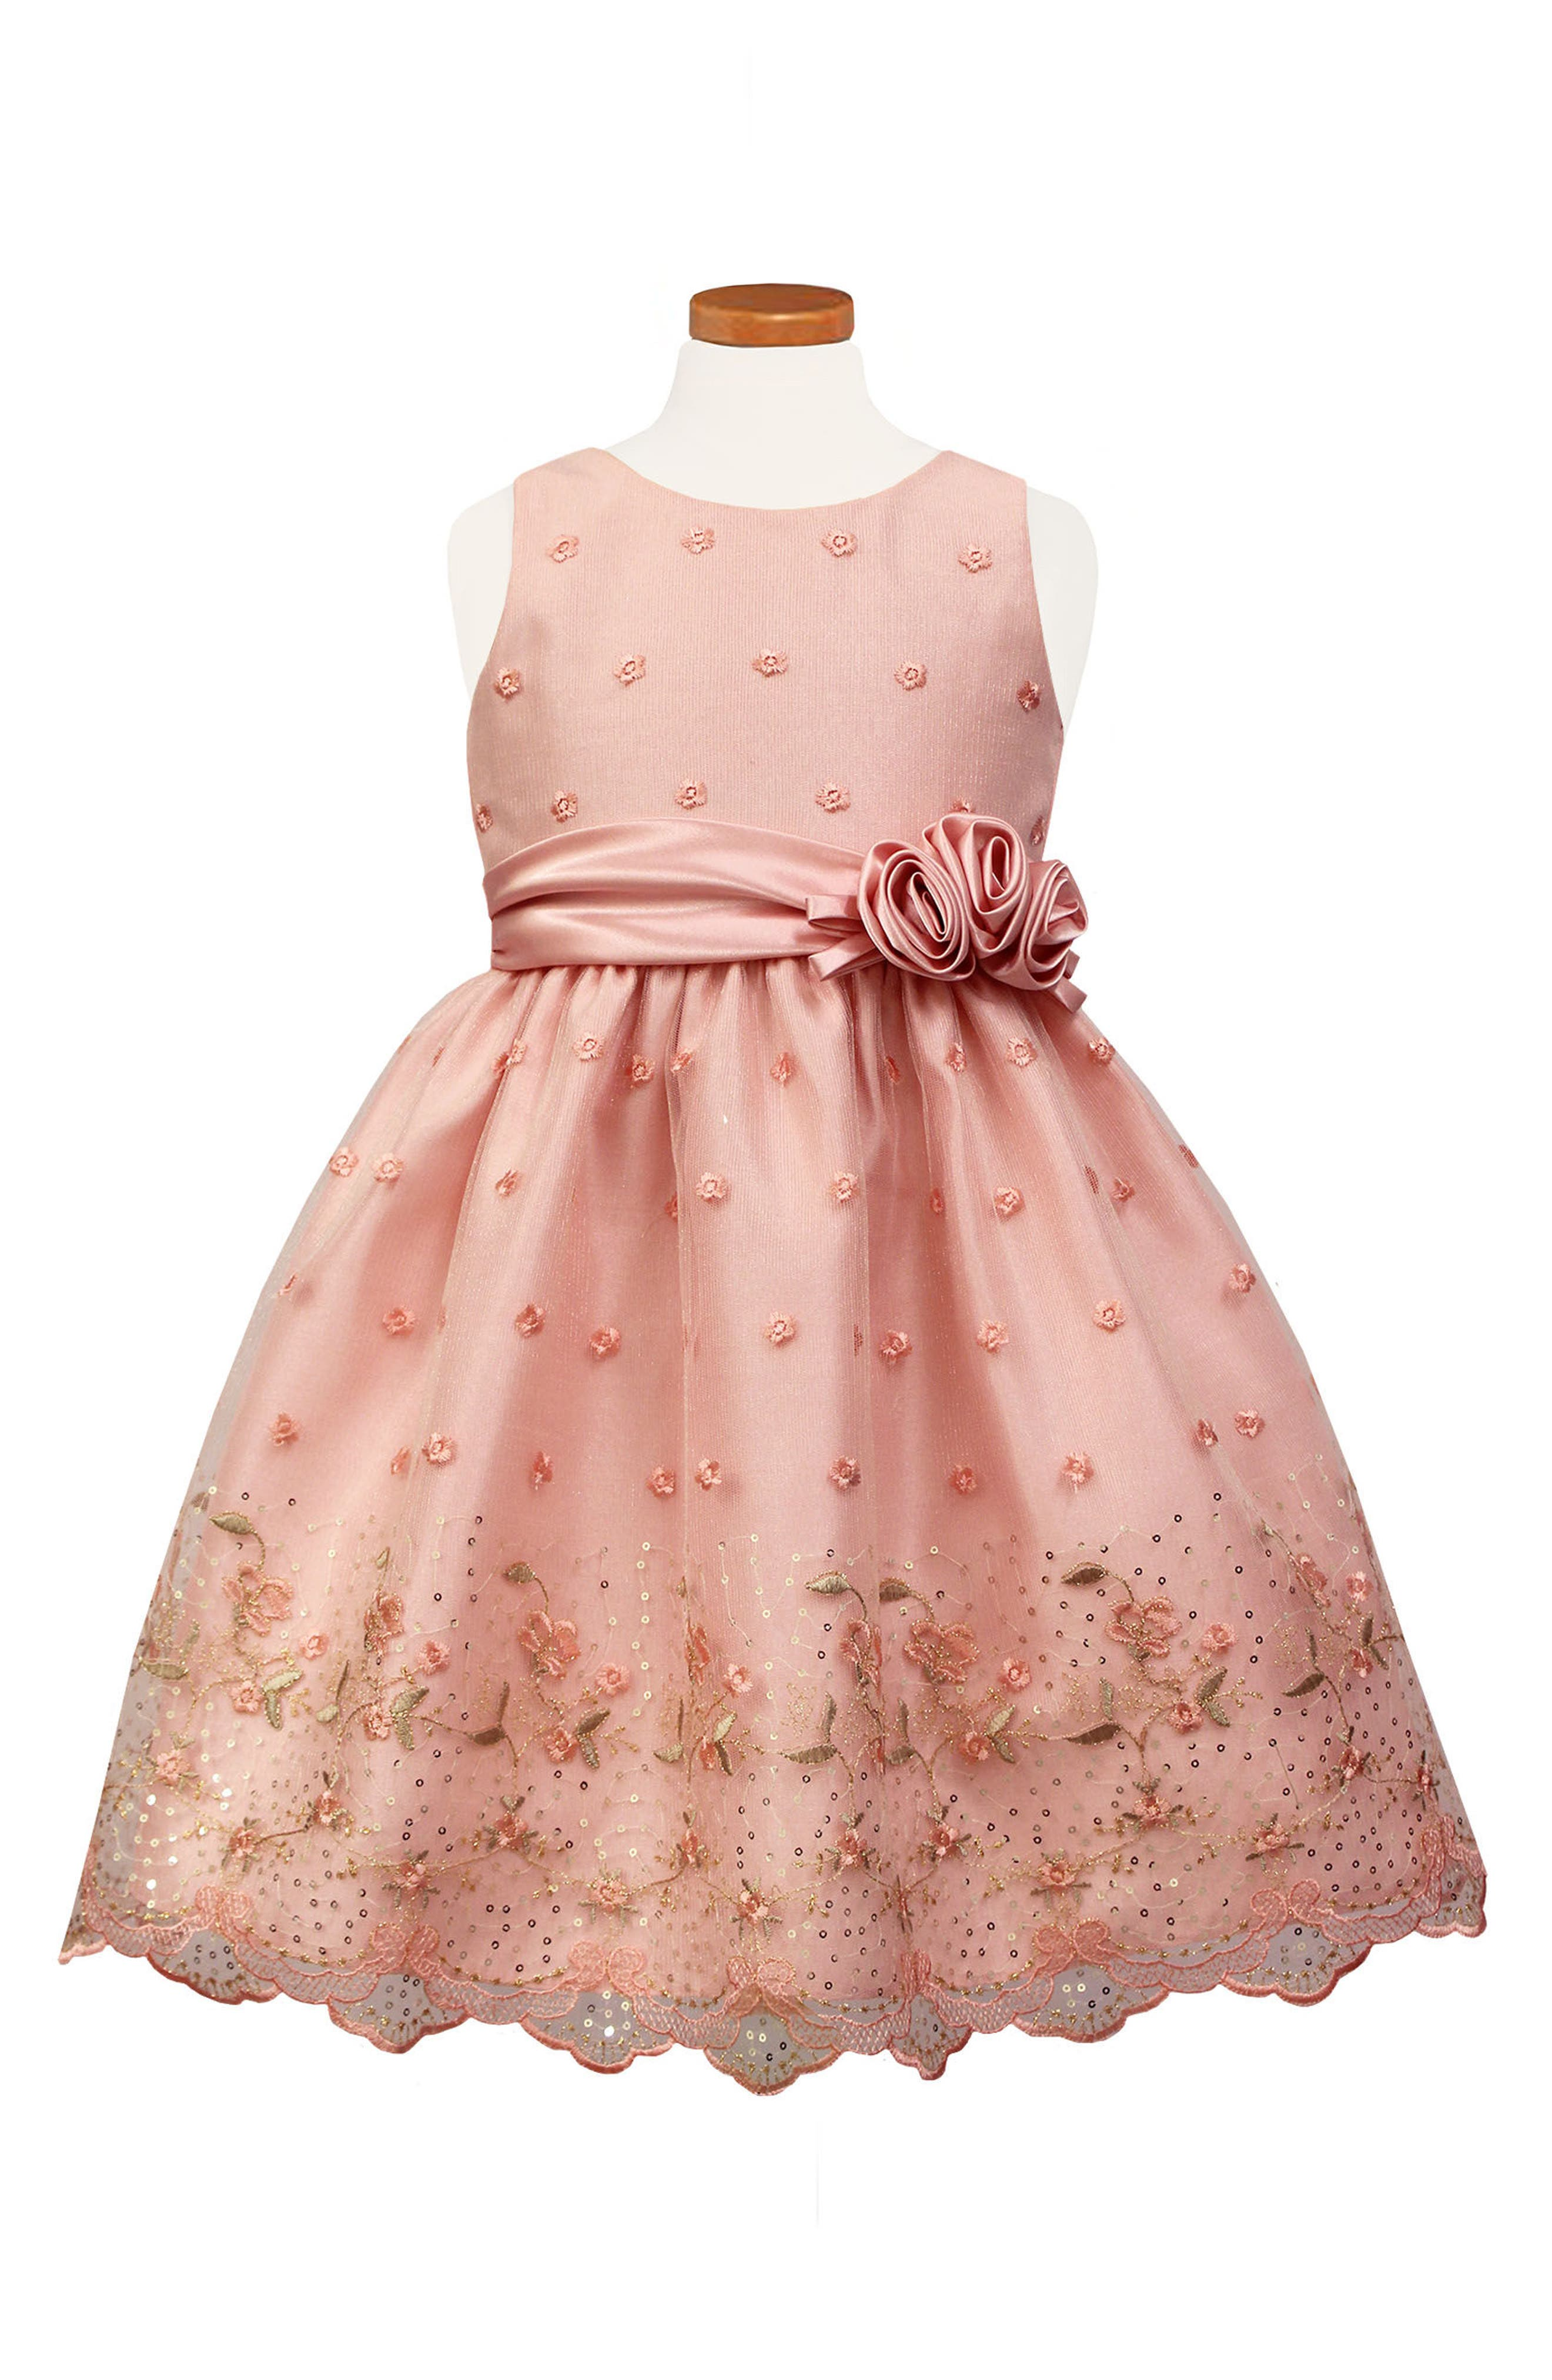 Alternate Image 1 Selected - Sorbet Flower Embroidered Party Dress (Big Girls)